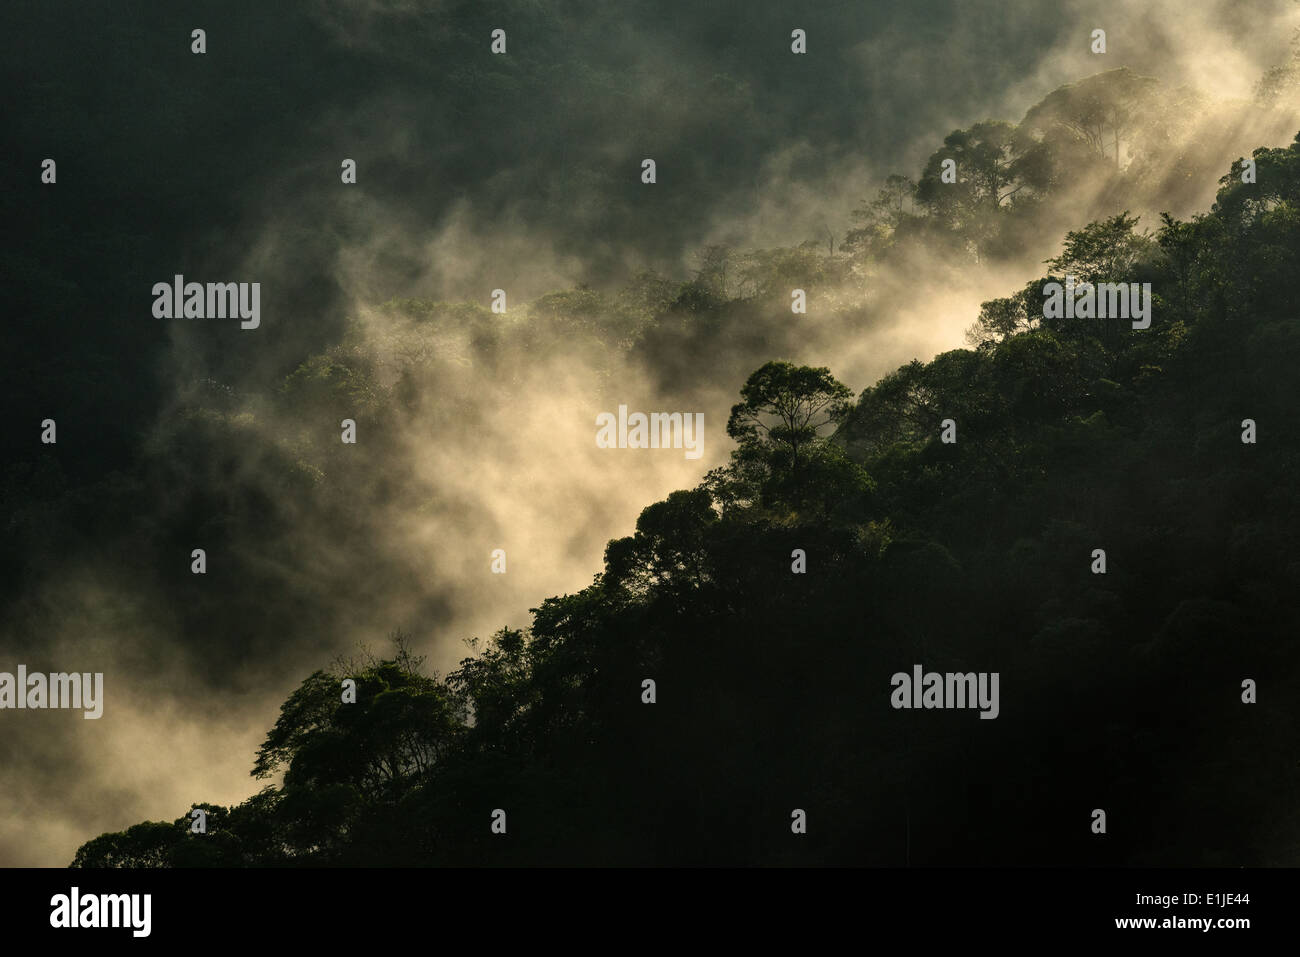 Cloud forest in the early morning - Stock Image